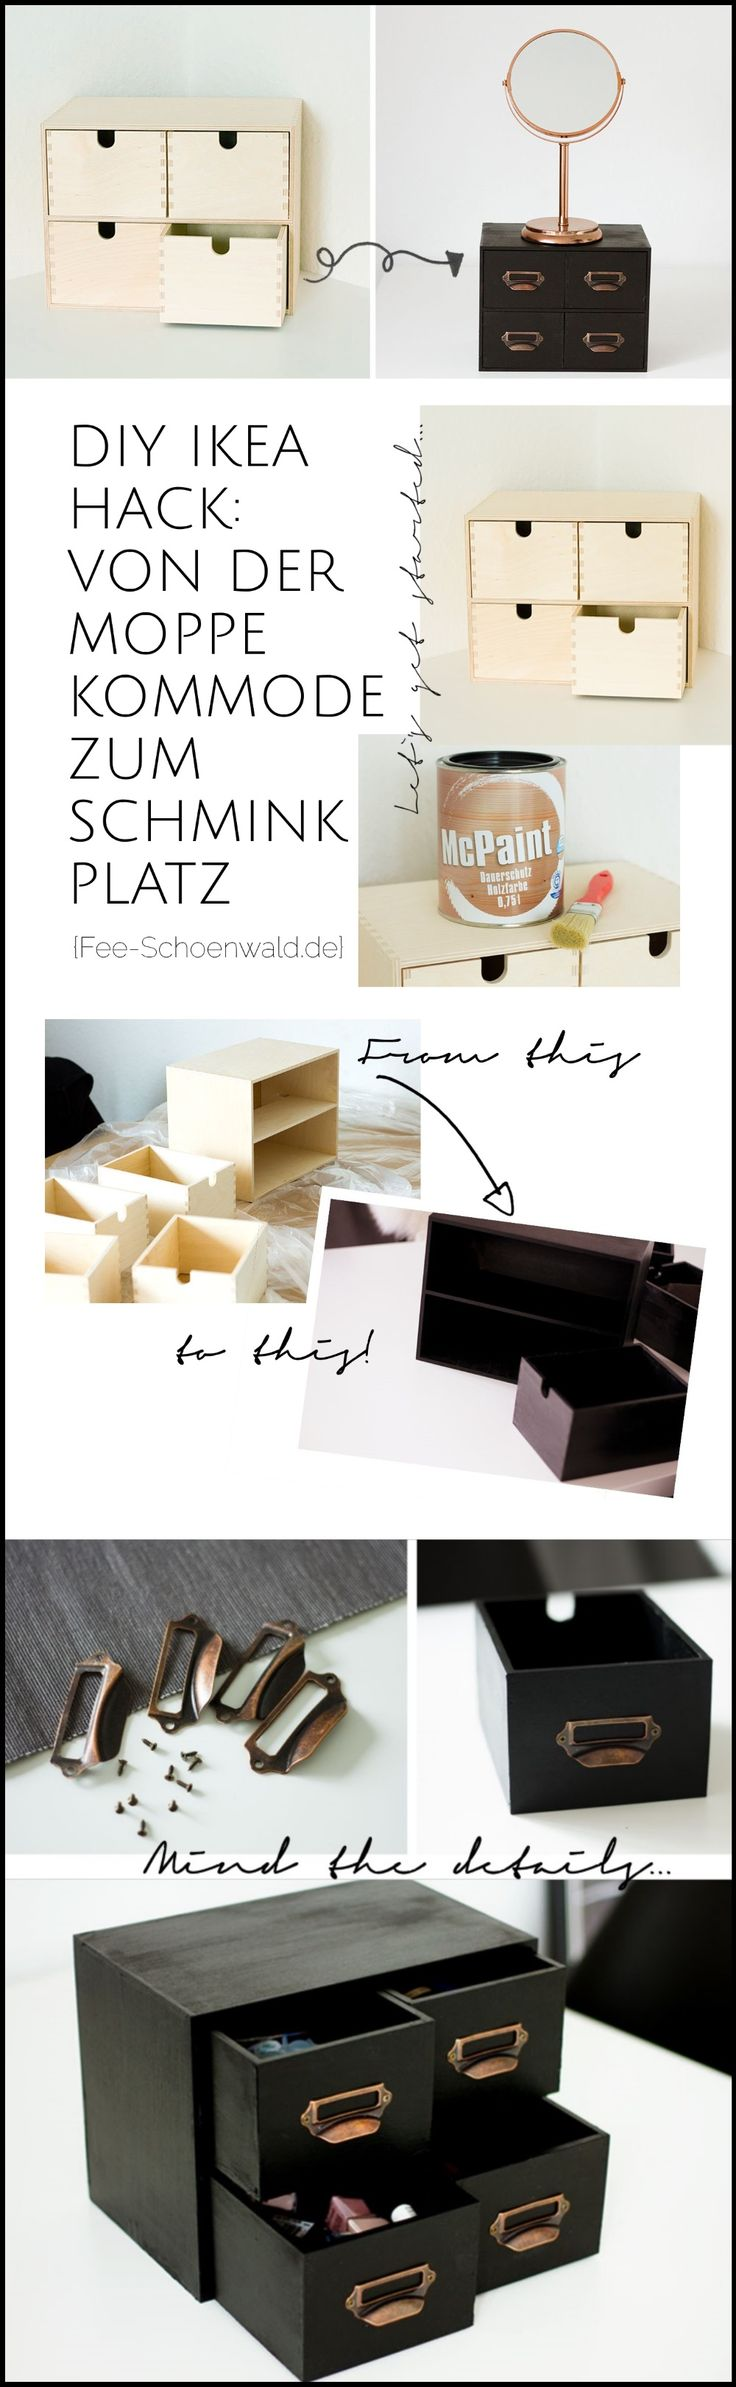 Ikea Upcycling Hack: DIY Schminkkommode von Moppe – Lisa Meyer